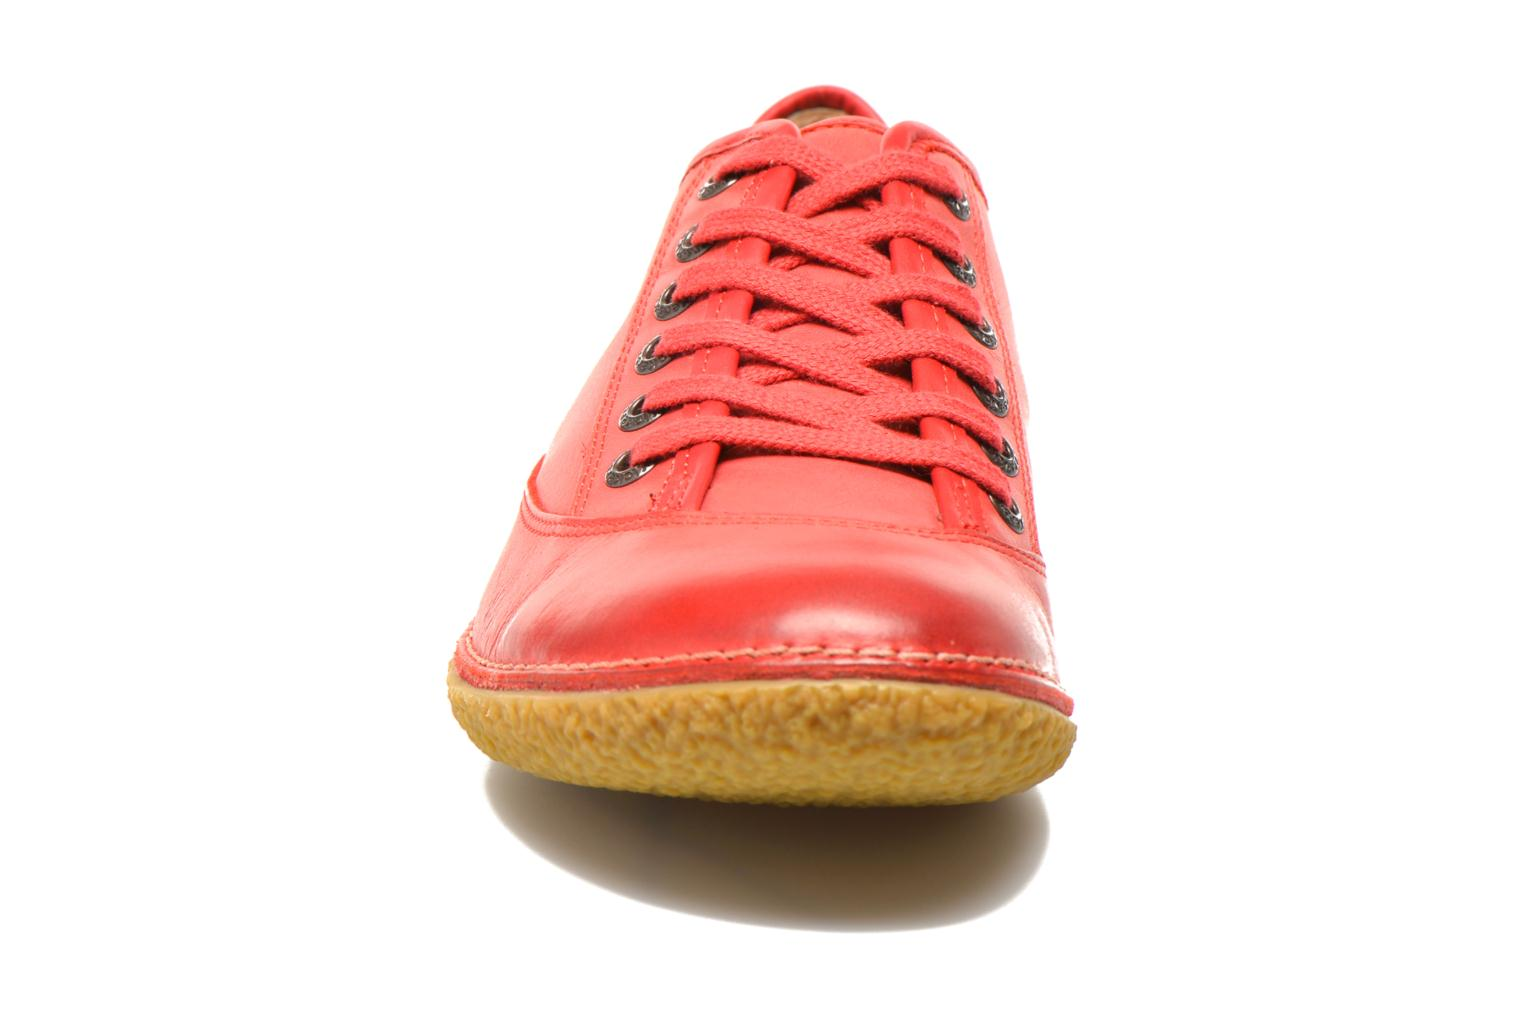 Chaussures à lacets Kickers Hollyday Rouge vue portées chaussures